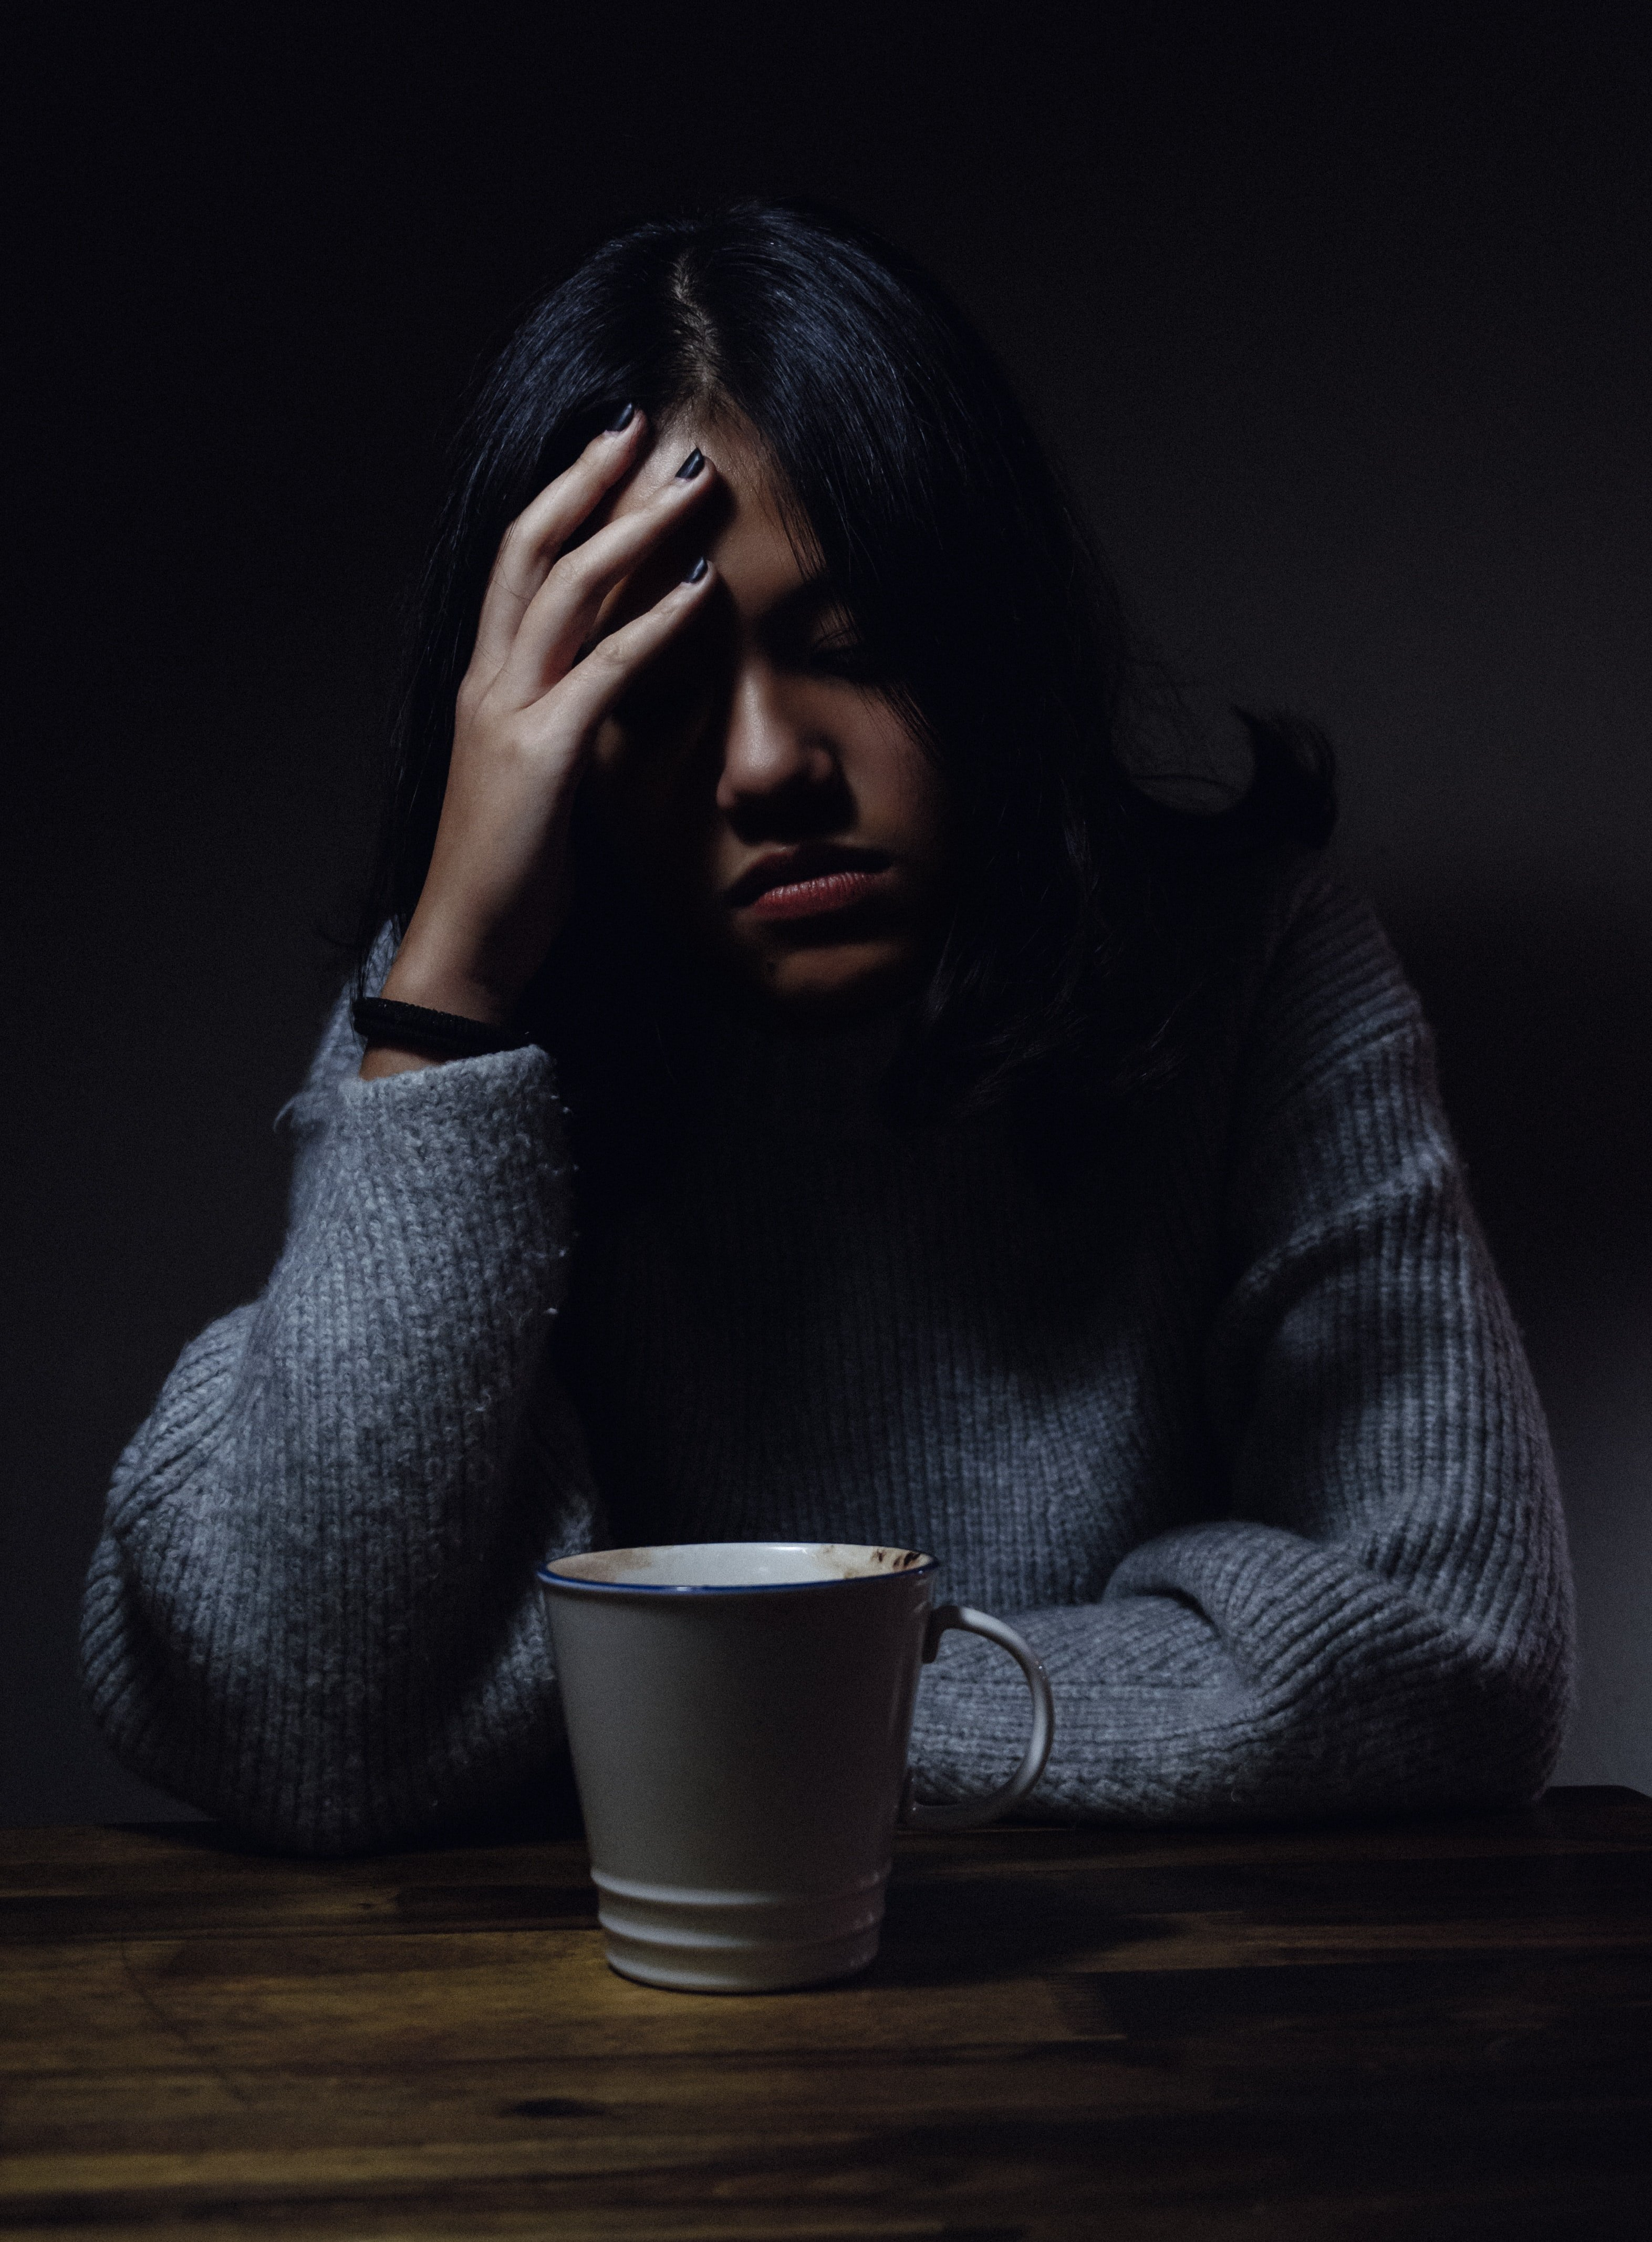 Picture of a sad woman wearing a gray jumper | Source: Unsplash /  Anh Nguyen